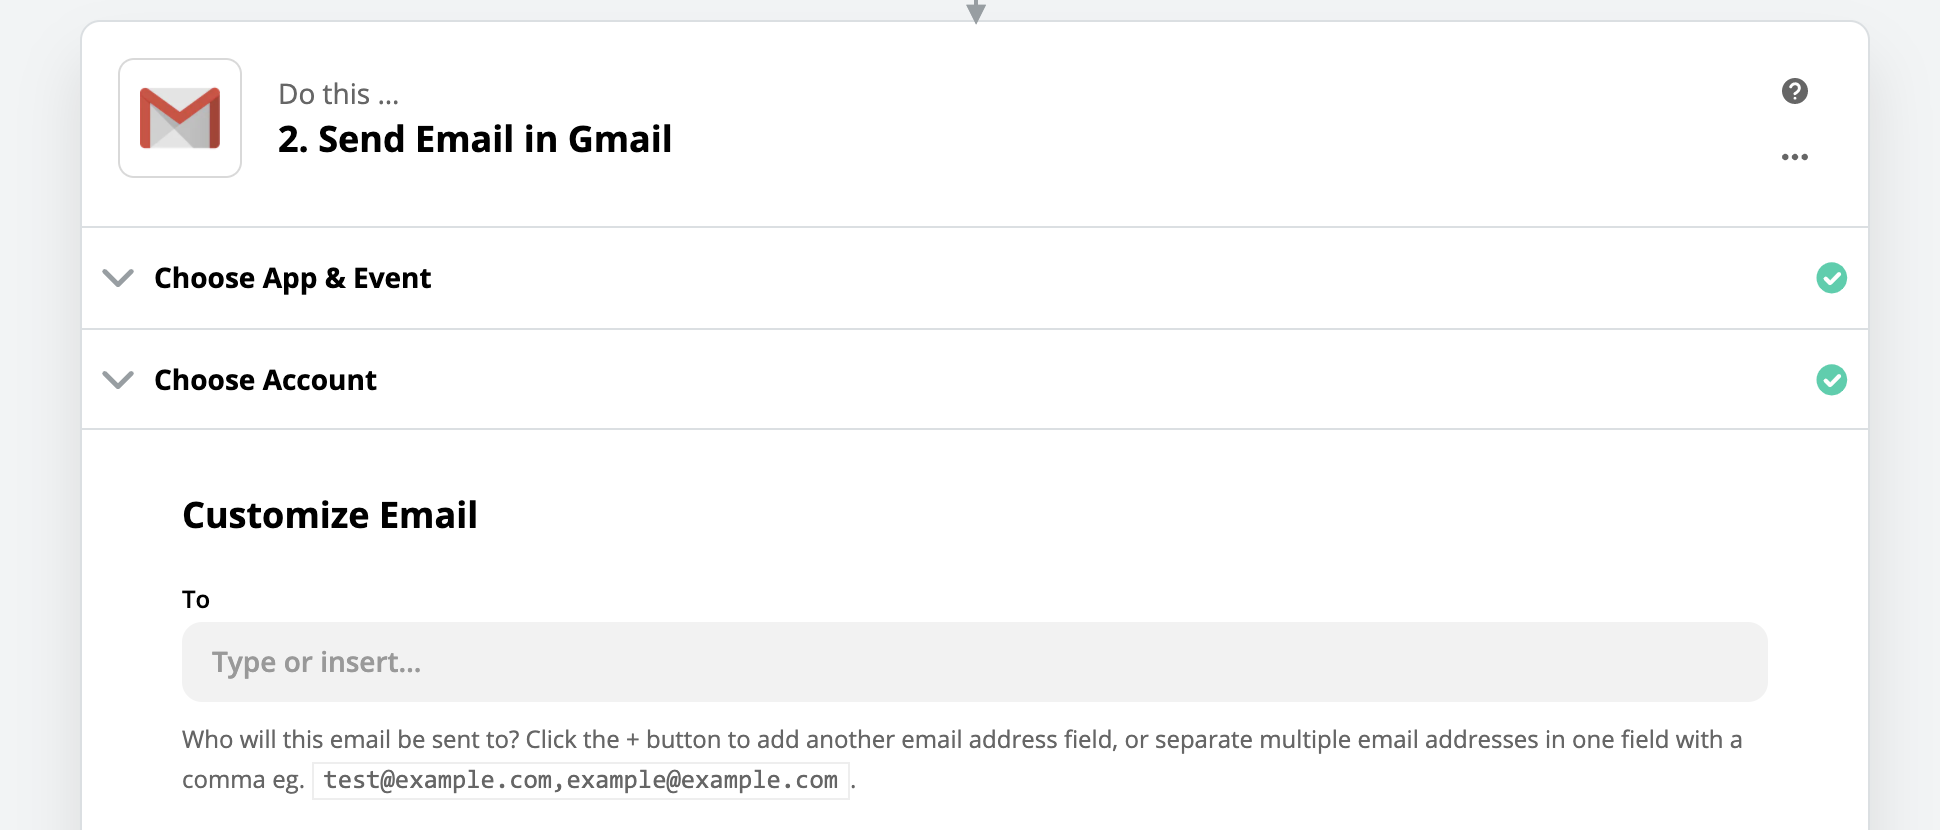 Composing a Gmail message in Zapier